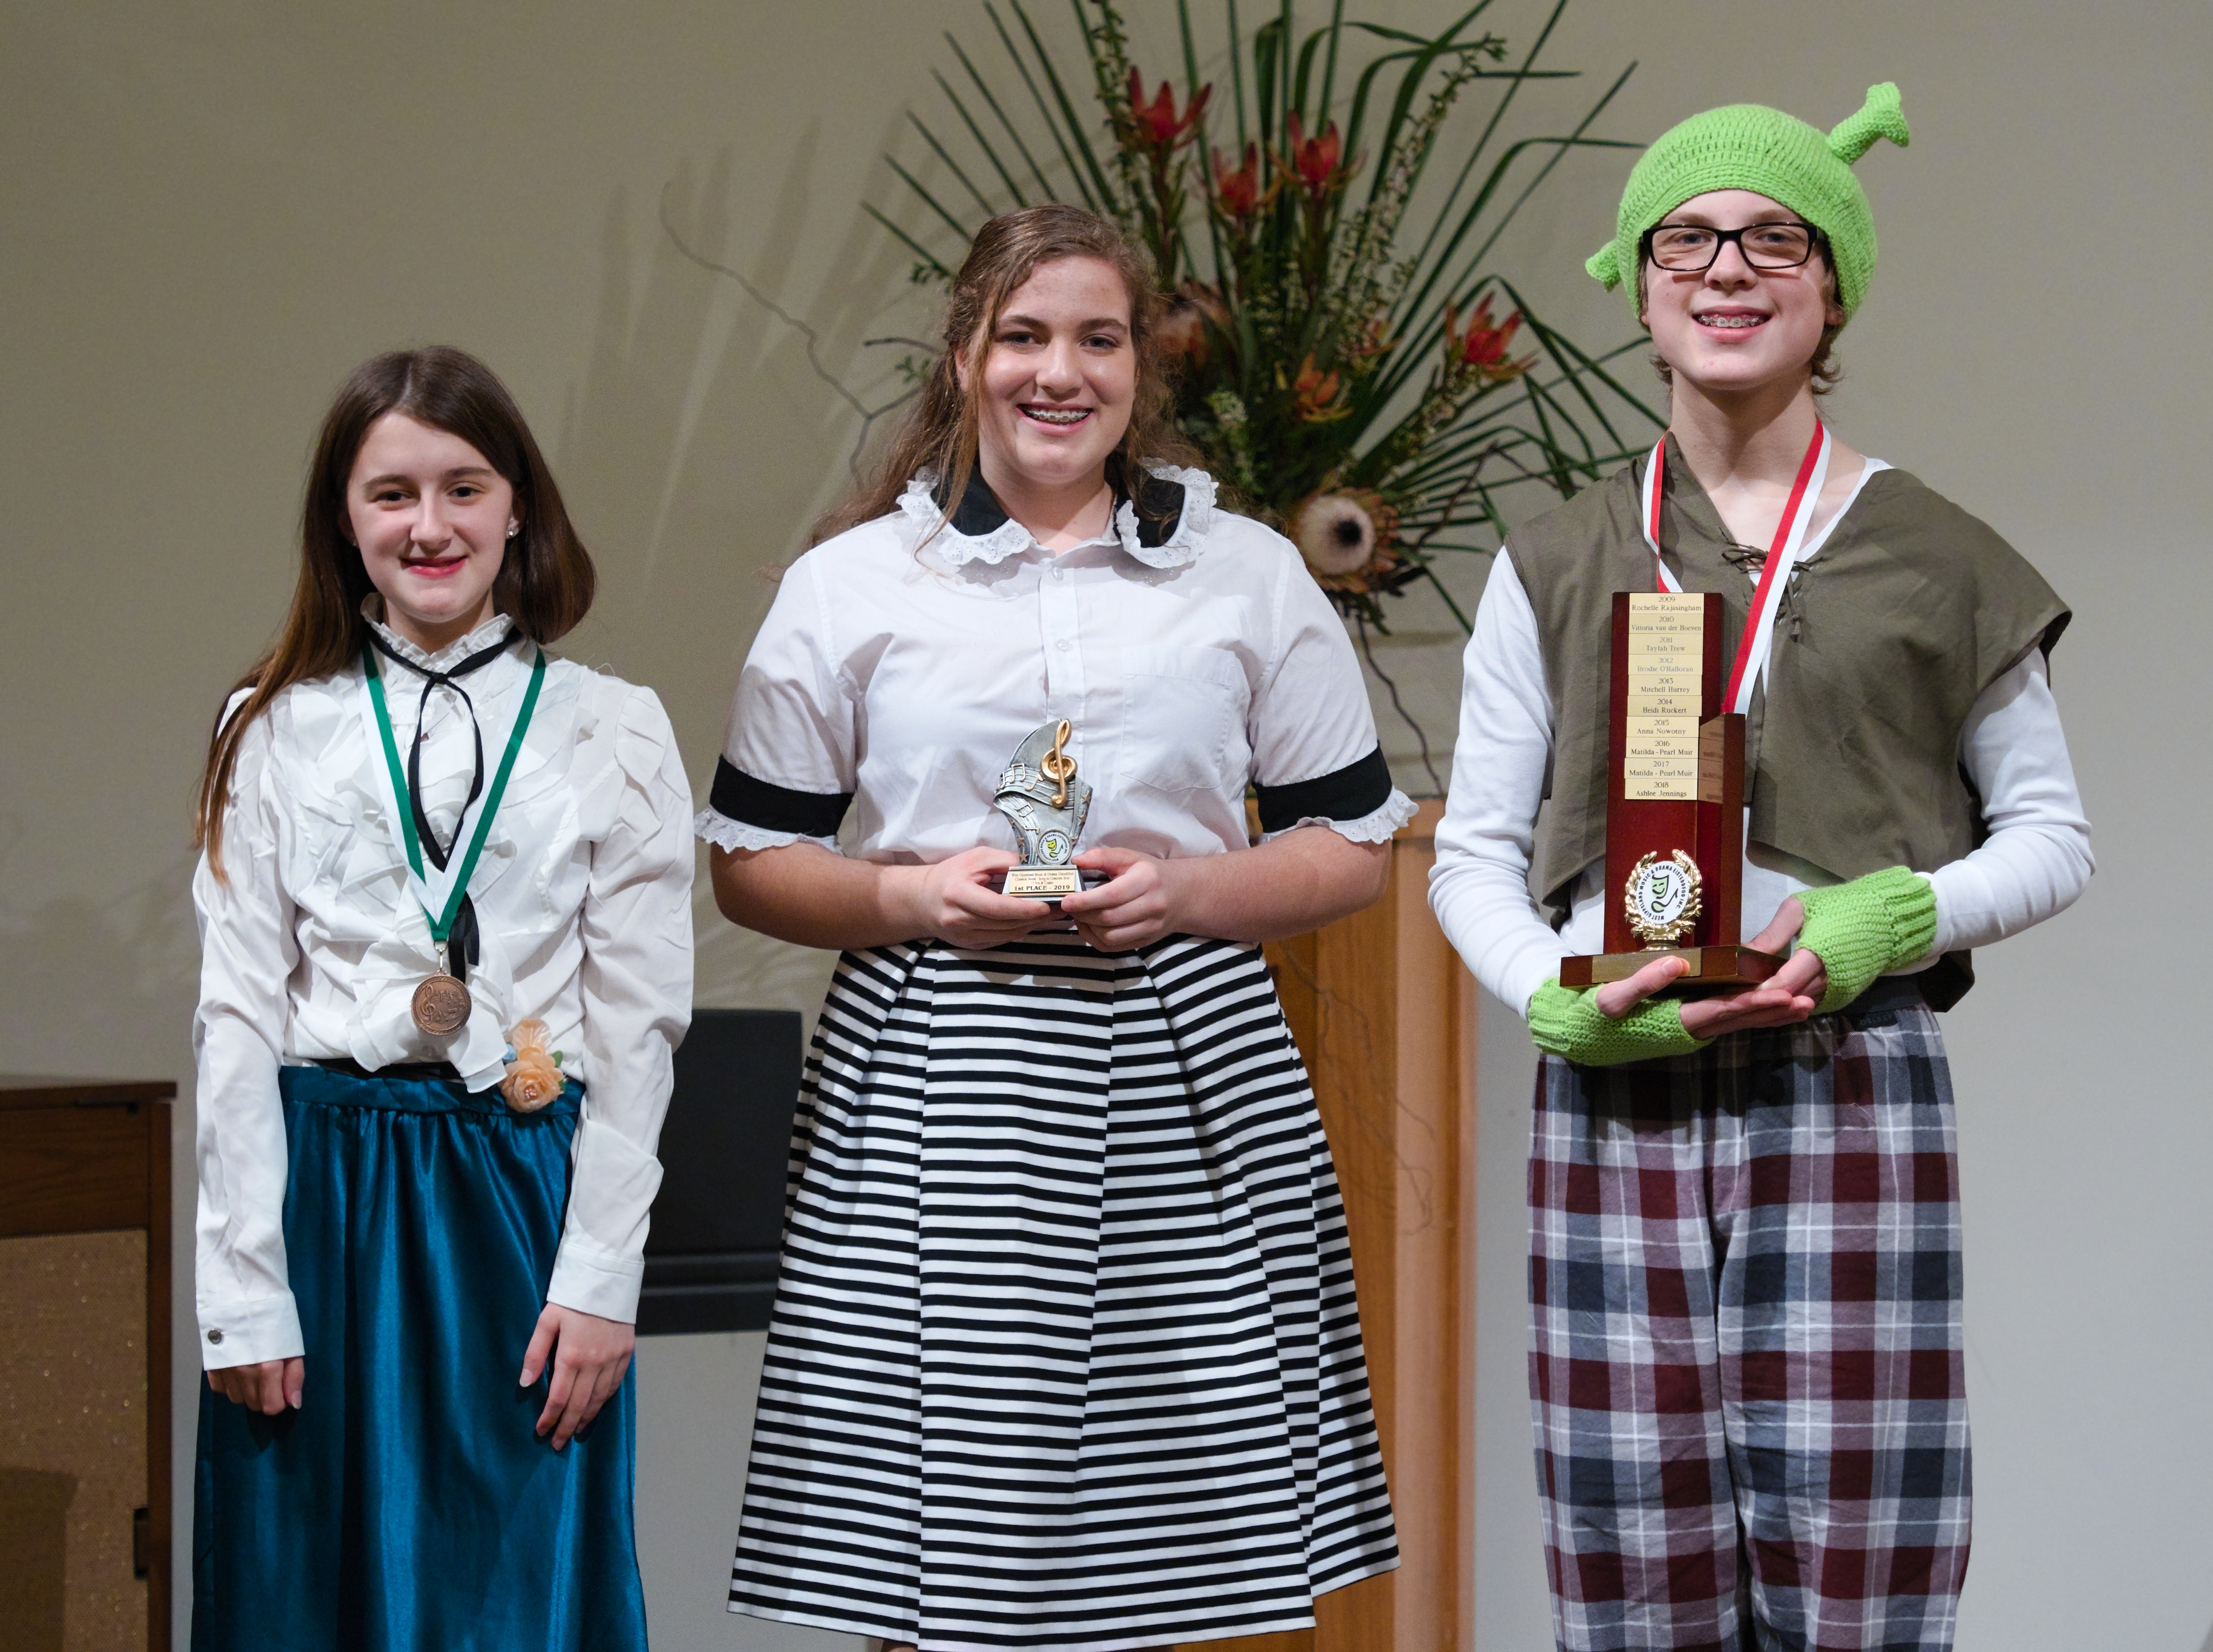 WGE Classical Vocal S709 1st Danielle Smith, 2nd Toby Wilksch, 3rd Holly Baker